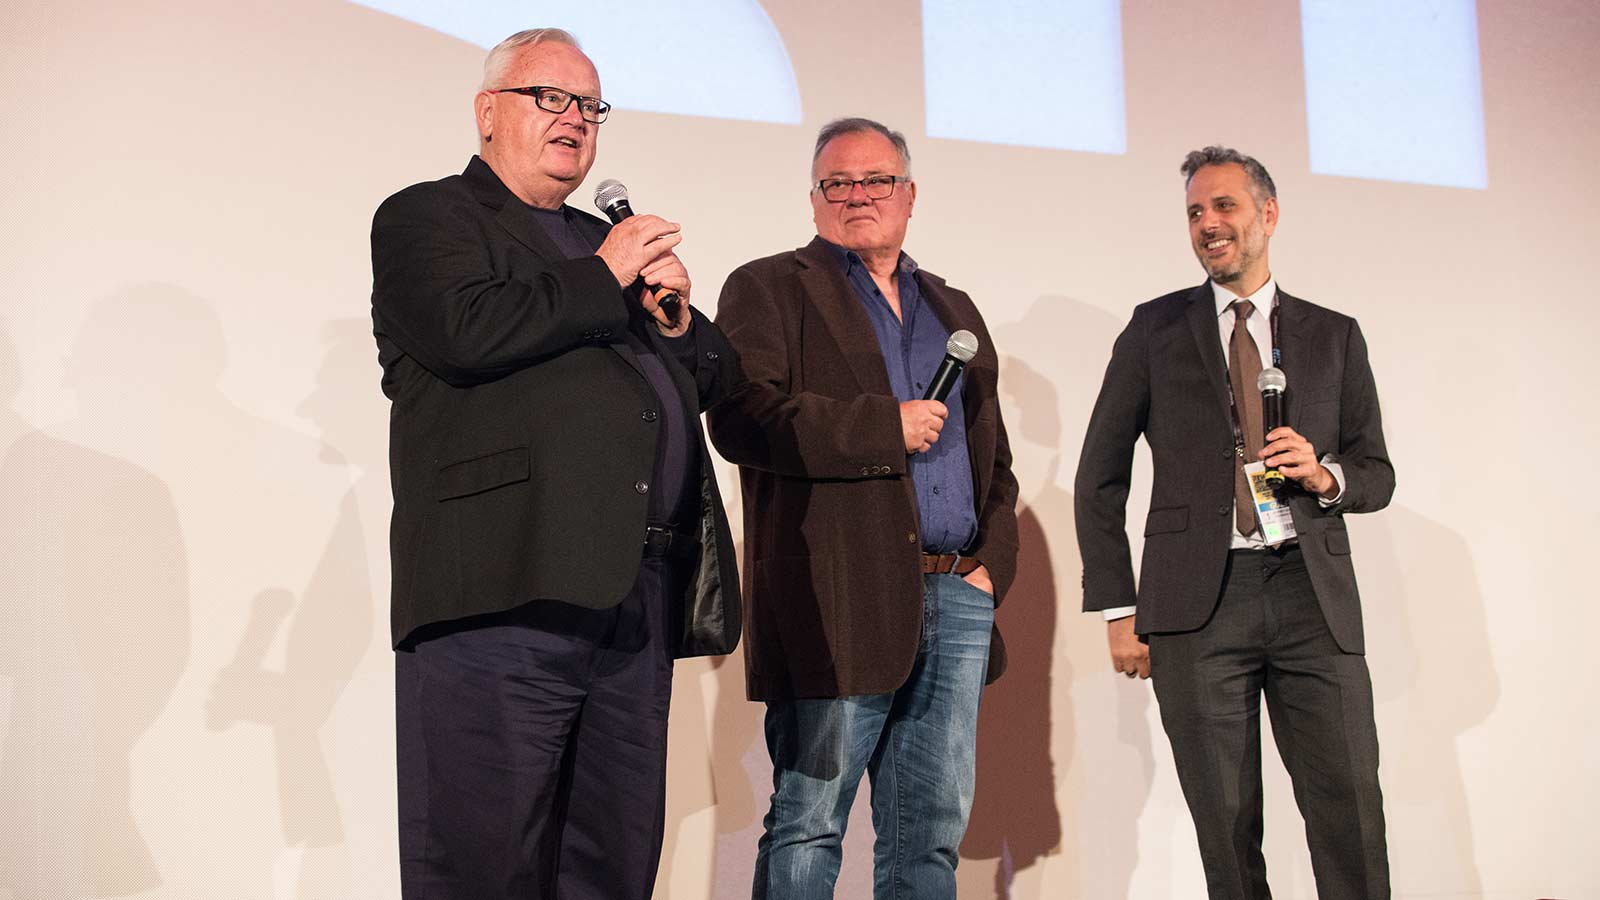 Schwarz and Two Interviewers On Stage